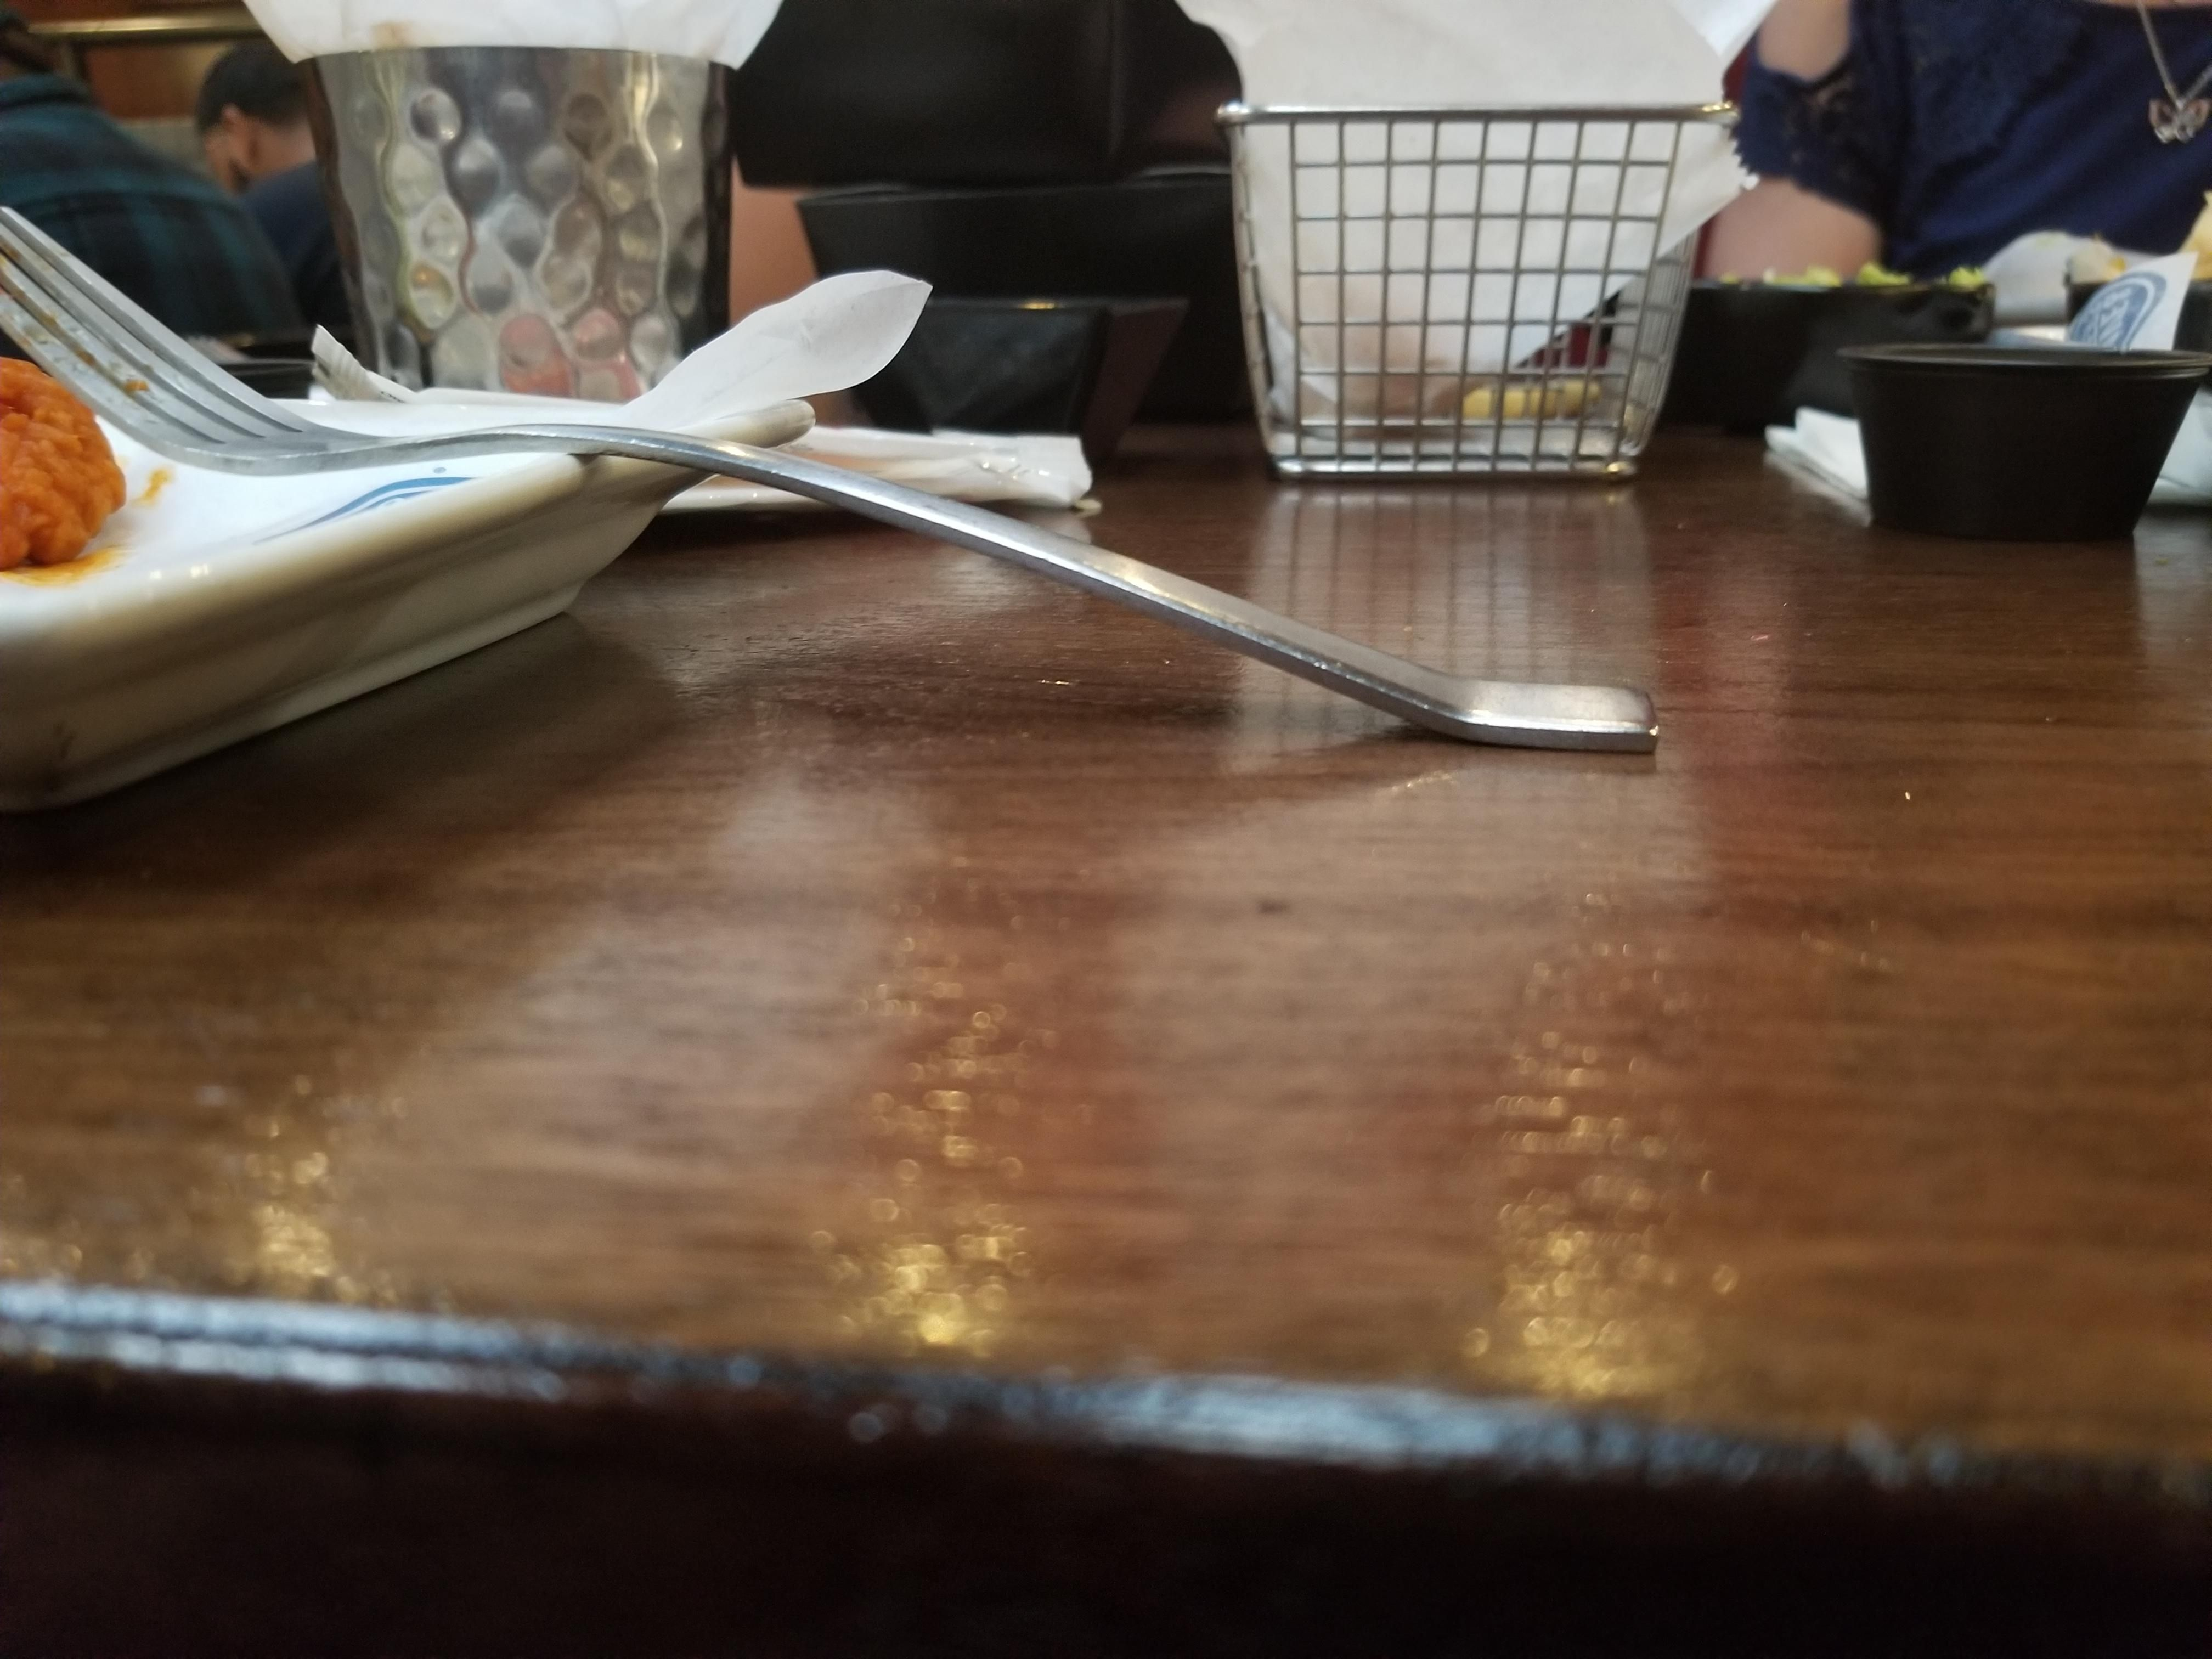 The Base Of This Fork Being Even With The Table